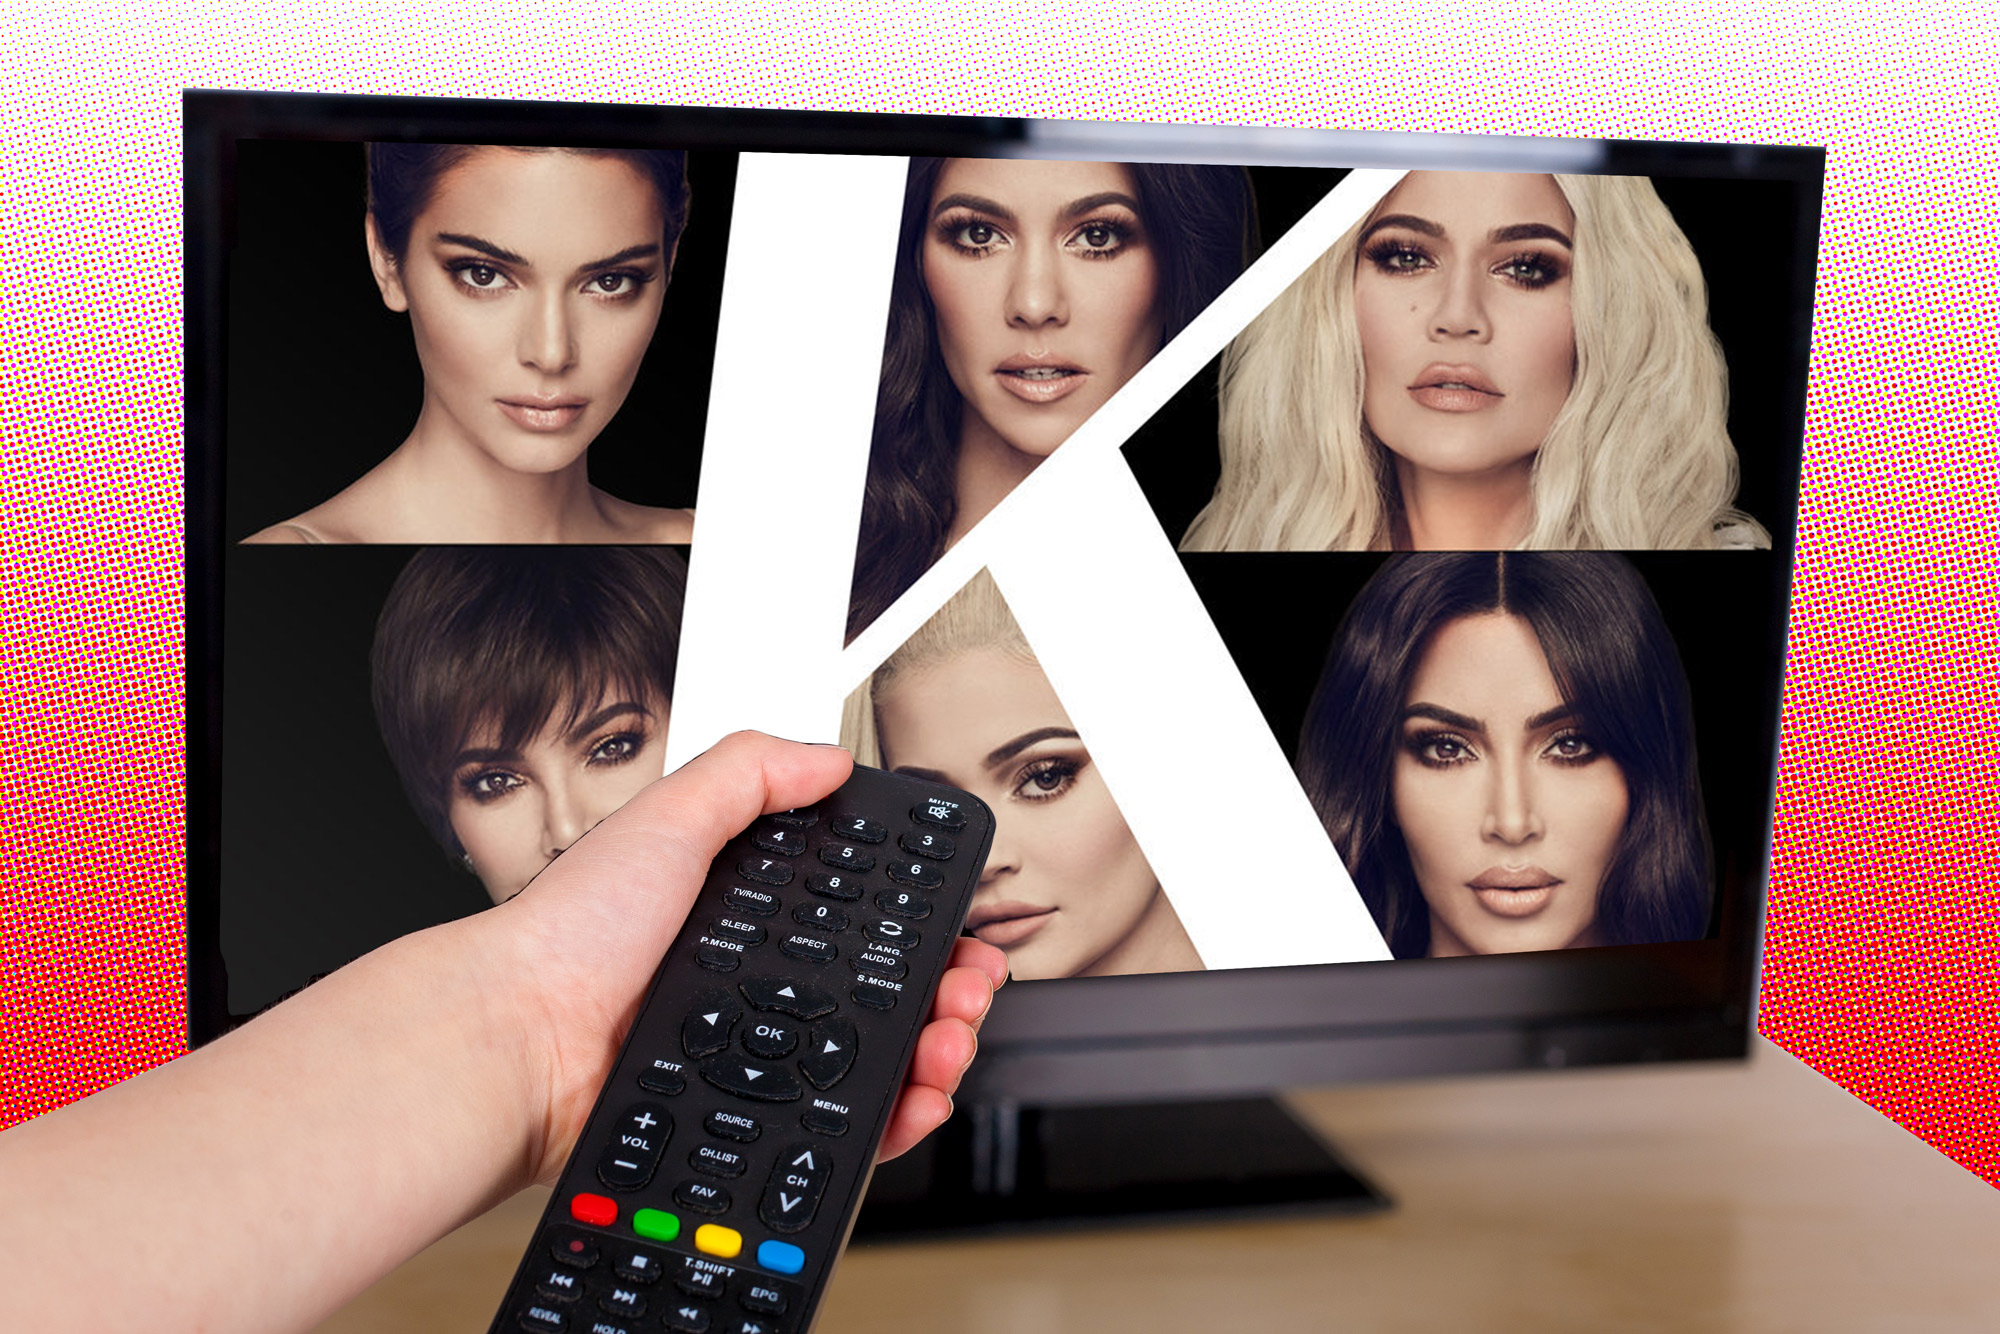 Kardashians expected to ink streaming deal with Netflix, Apple or Amazon